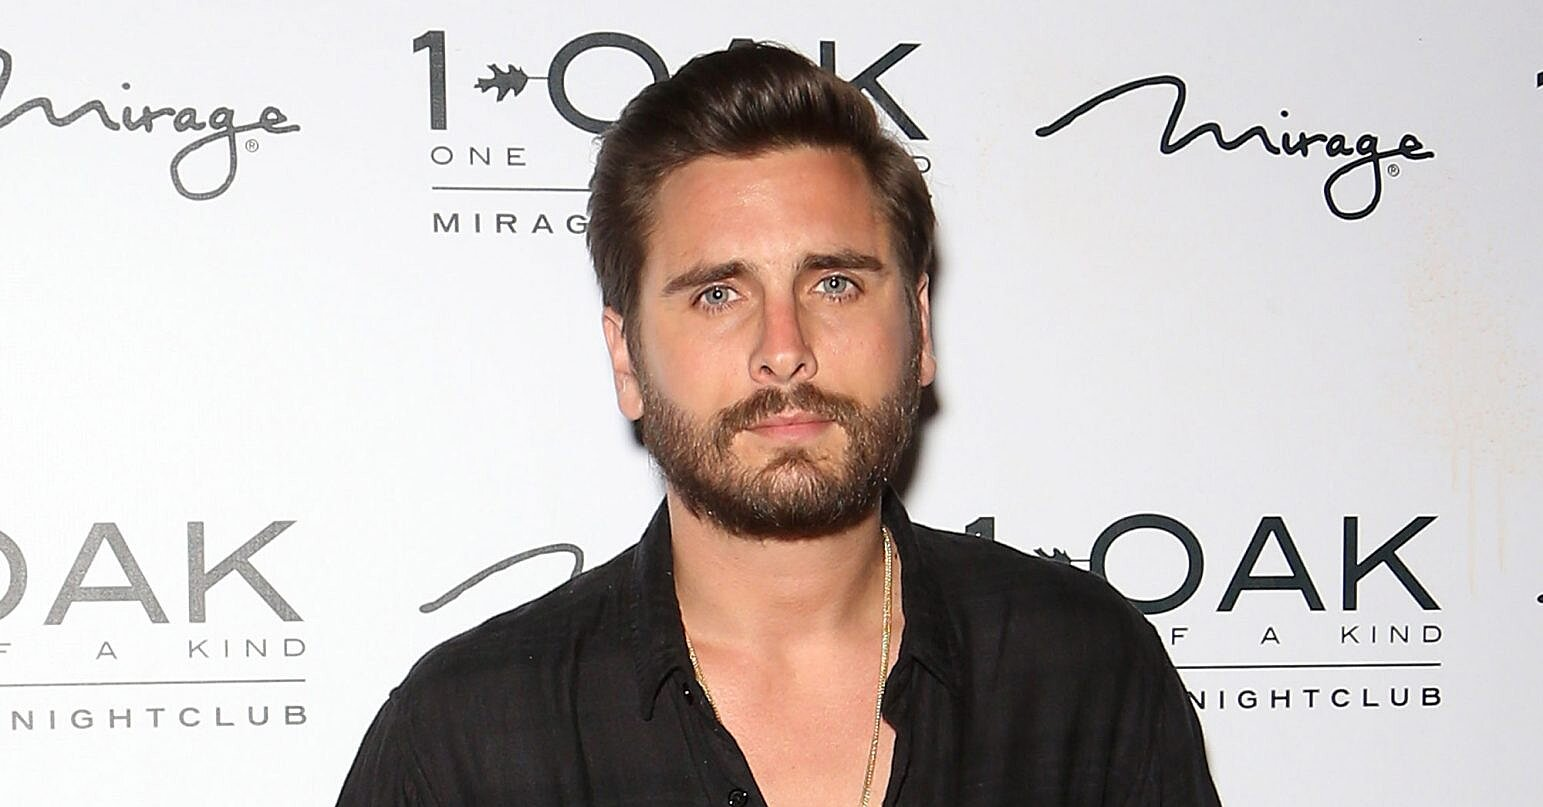 Scott Disick Finds Out He Has Low Testosterone On Kuwtk, Says His Body Took A 'beating' From Drinking photo